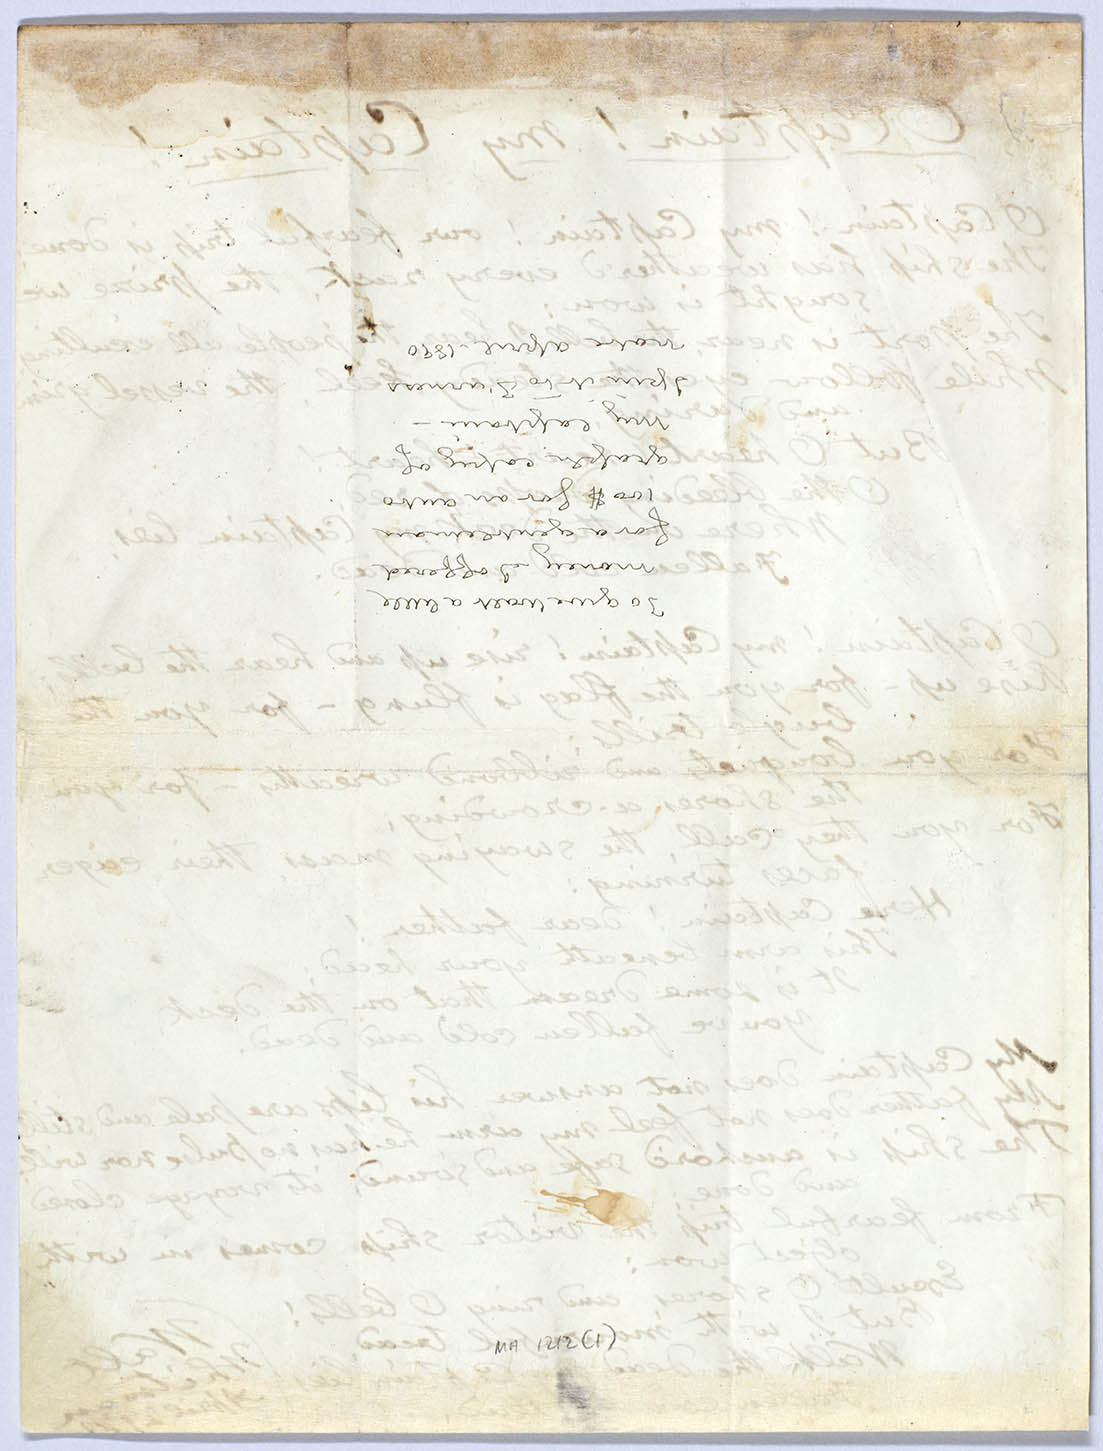 catalog of the walt whitman literary manuscripts in the pierpont content o captain my captain was written in response to the death of abraham lincoln and first published on 4 1865 in the new york saturday